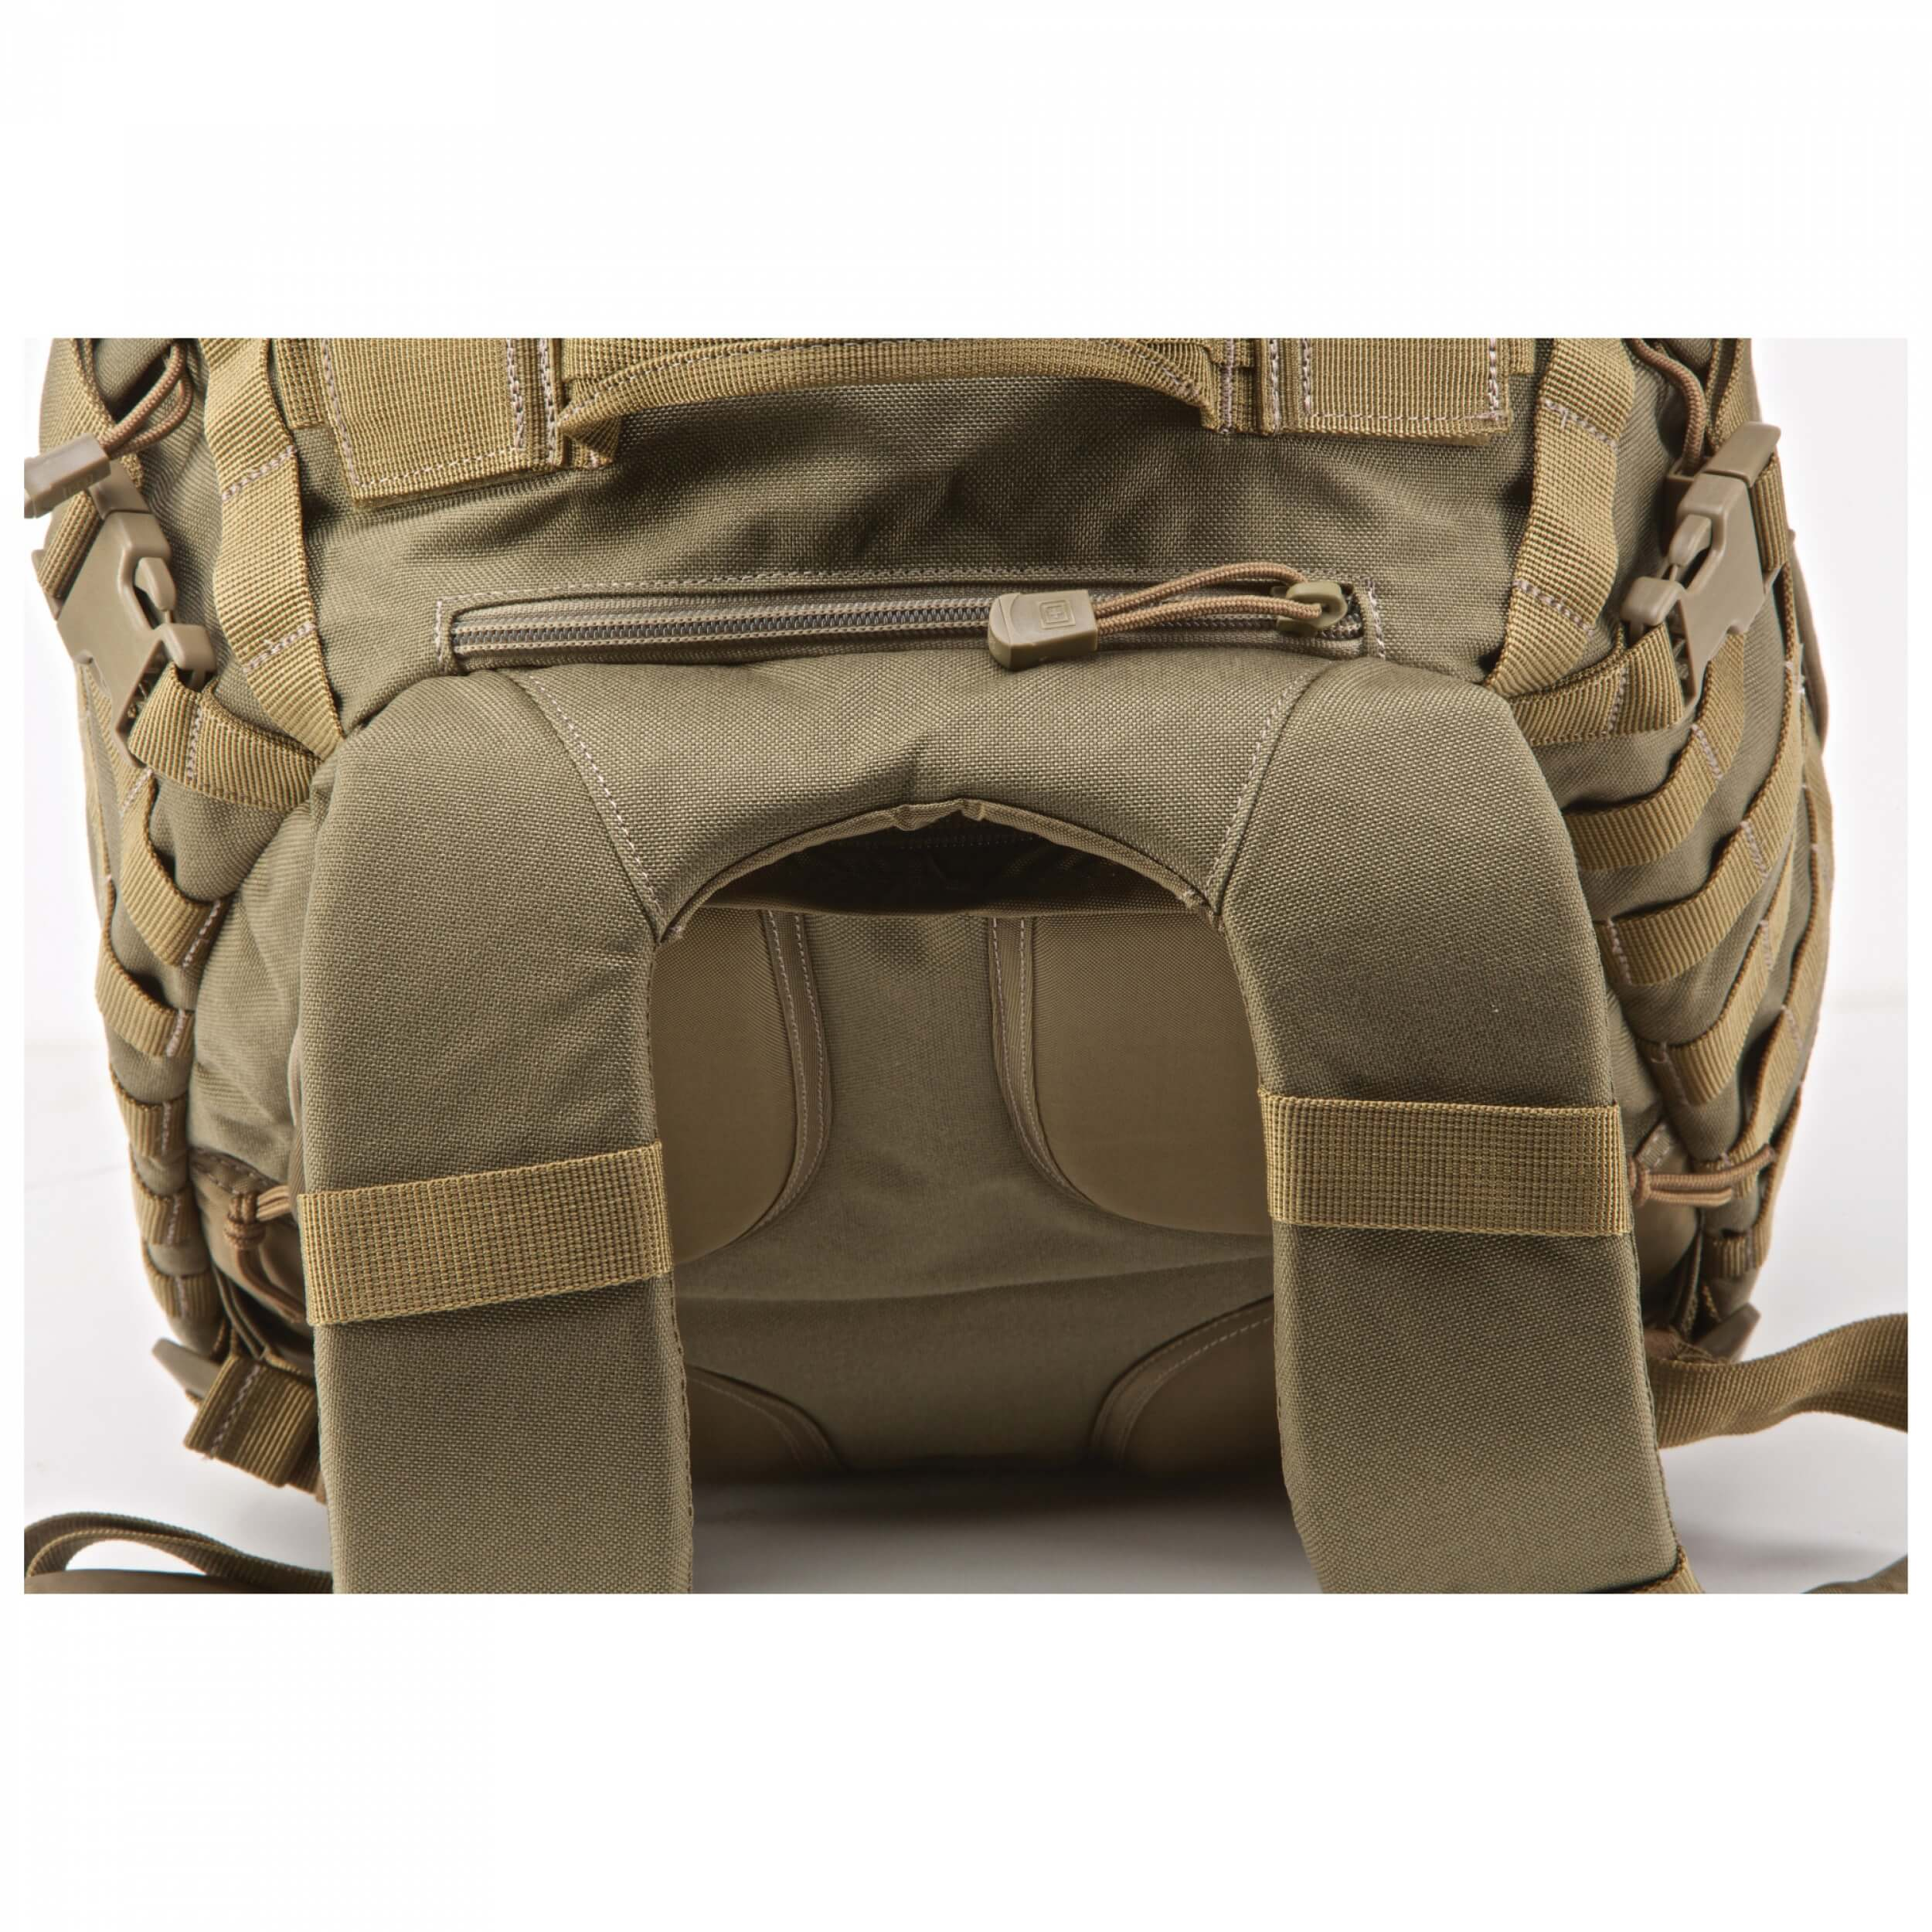 5.11 Tactical Rush 72 Backpack Storm